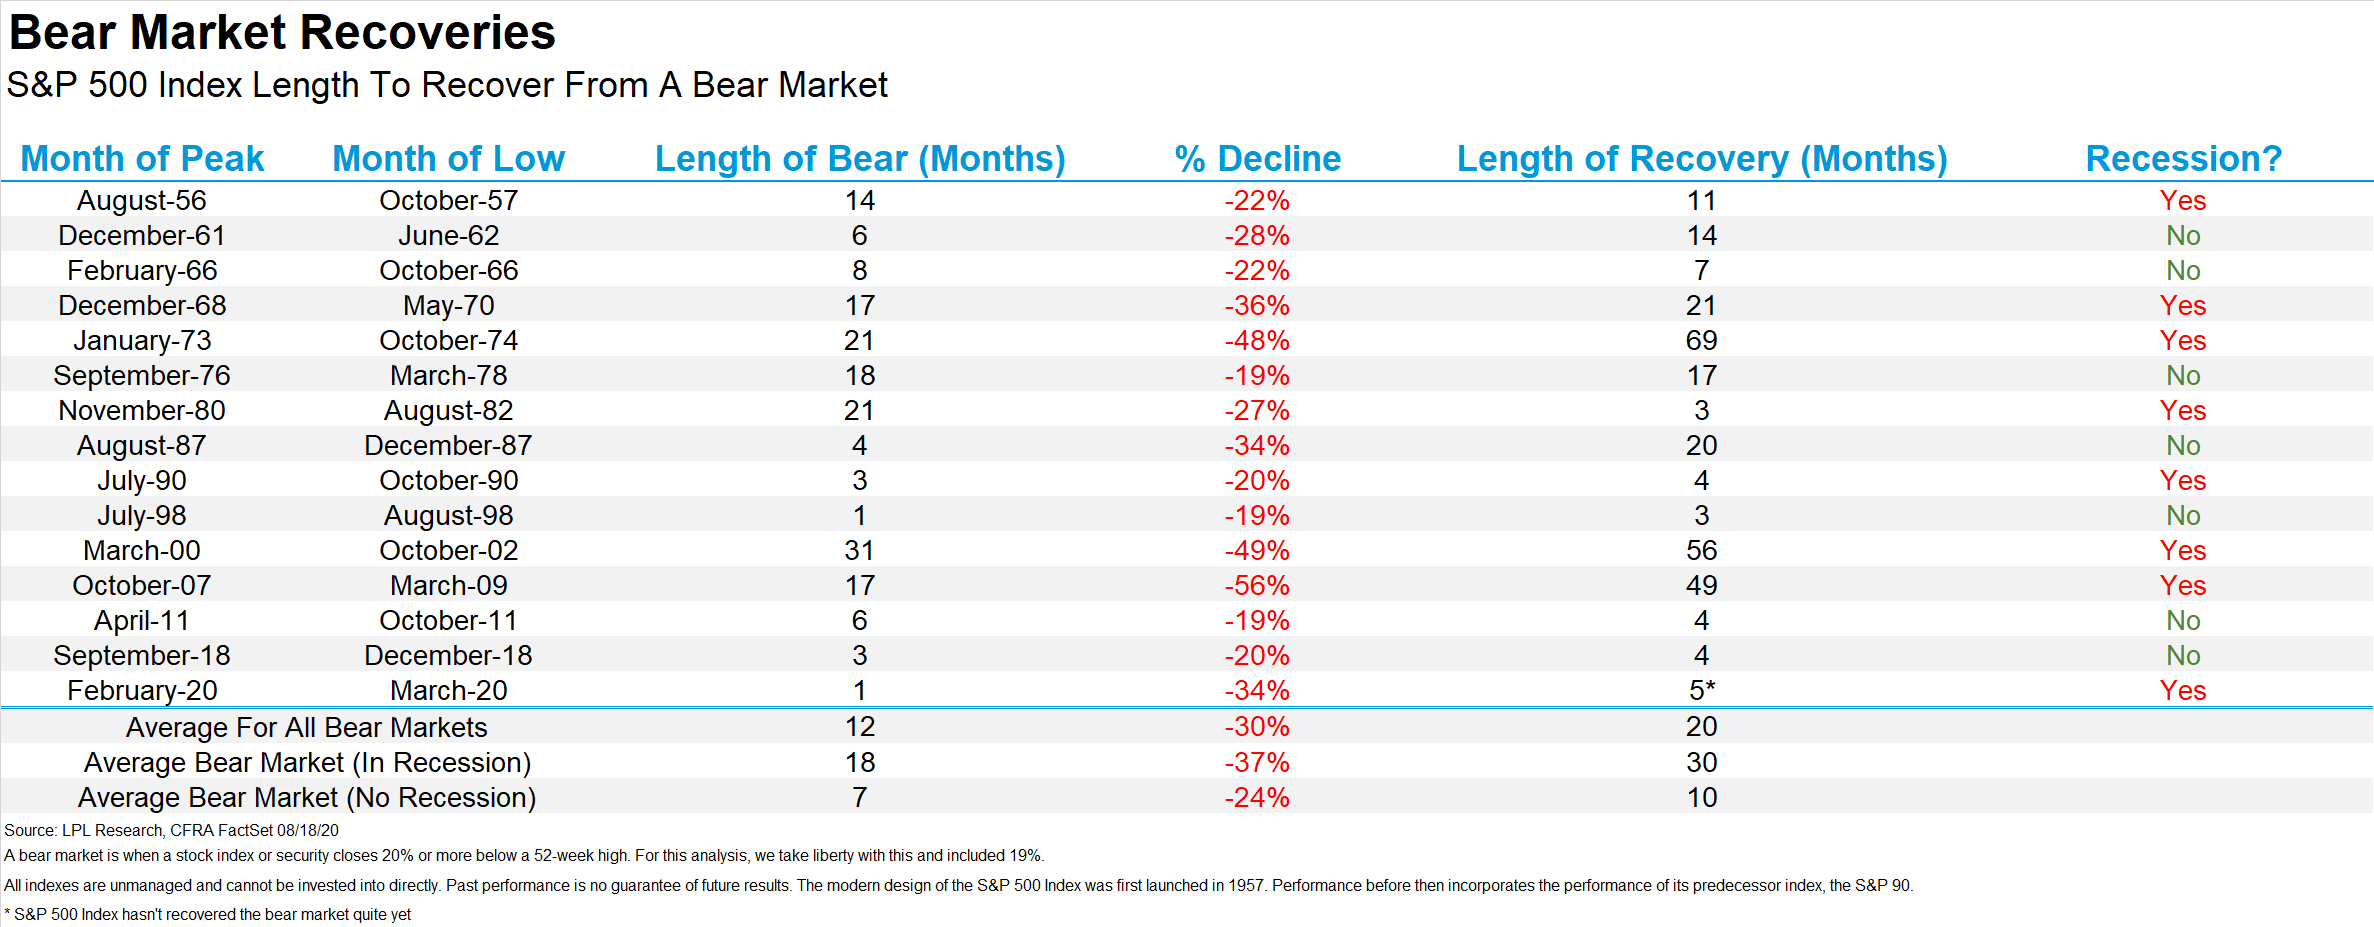 Bear Market Recoveries